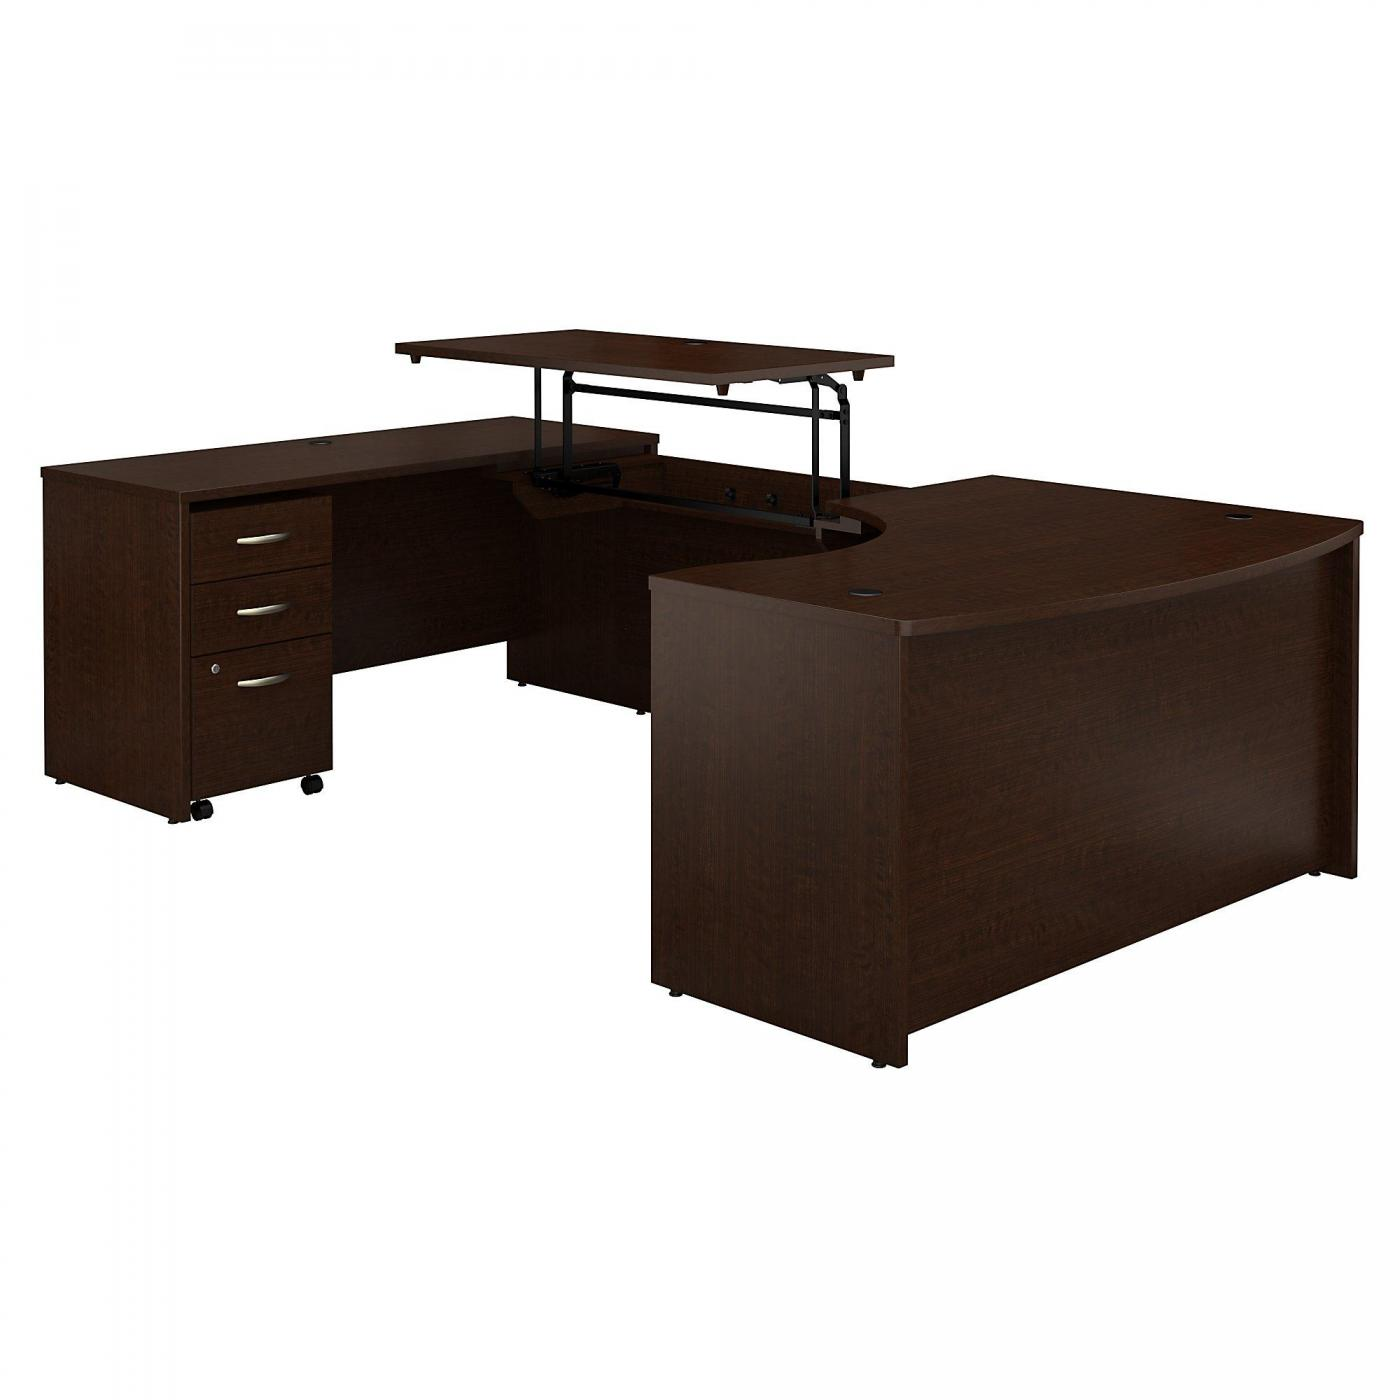 <font color=#c60><b>BUSH BUSINESS FURNITURE SERIES C 60W X 43D RIGHT HAND 3 POSITION SIT TO STAND U SHAPED DESK WITH MOBILE FILE CABINET. FREE SHIPPING. VIDEO:</font></b>